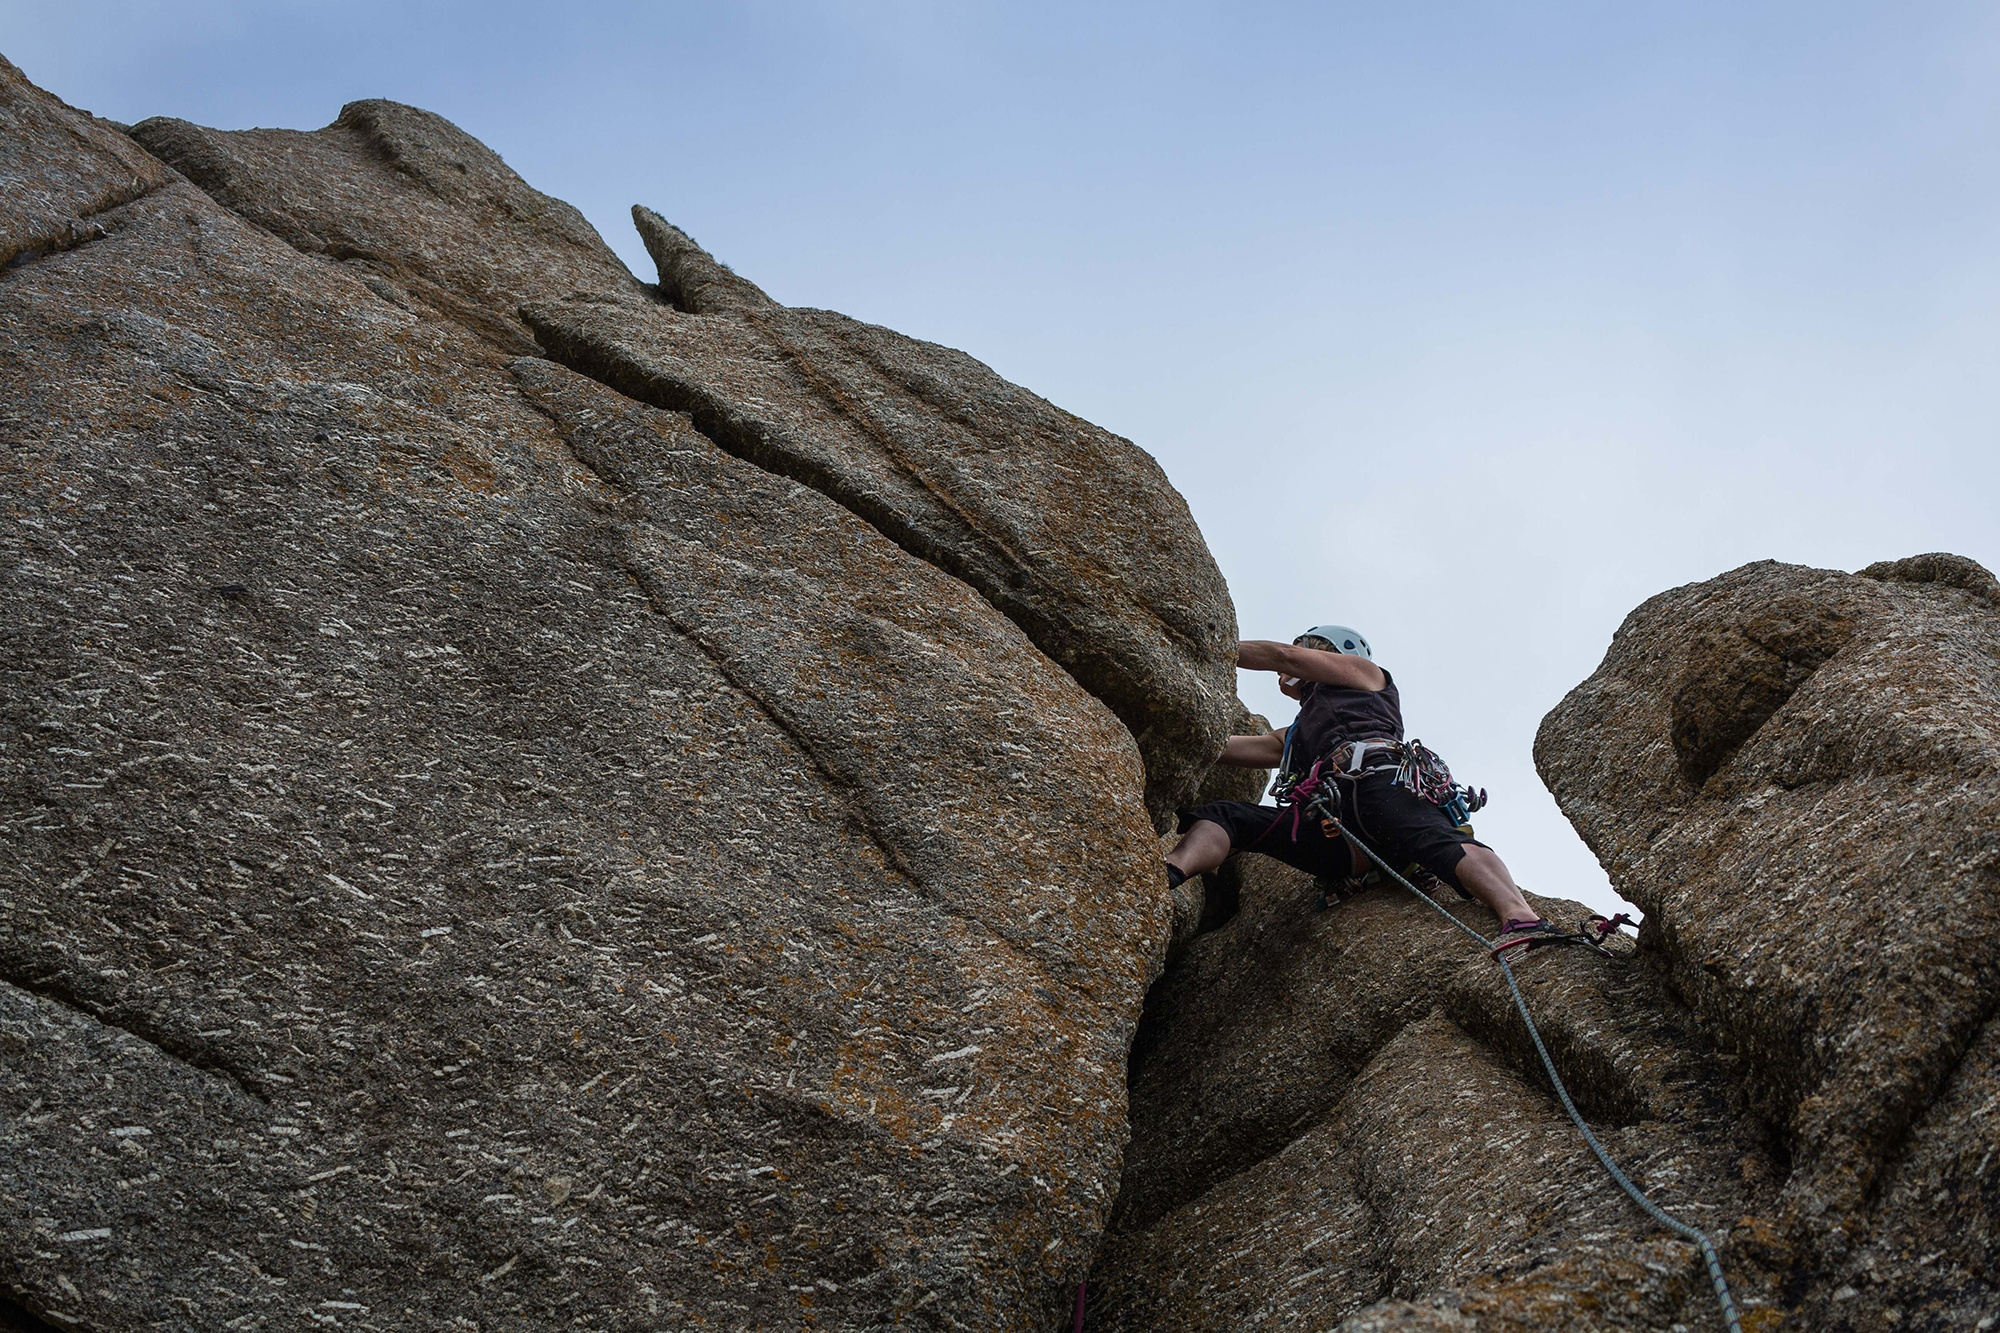 Val Climbing on Helluva Slab in Cornwall. Photographed by Jessie Leong